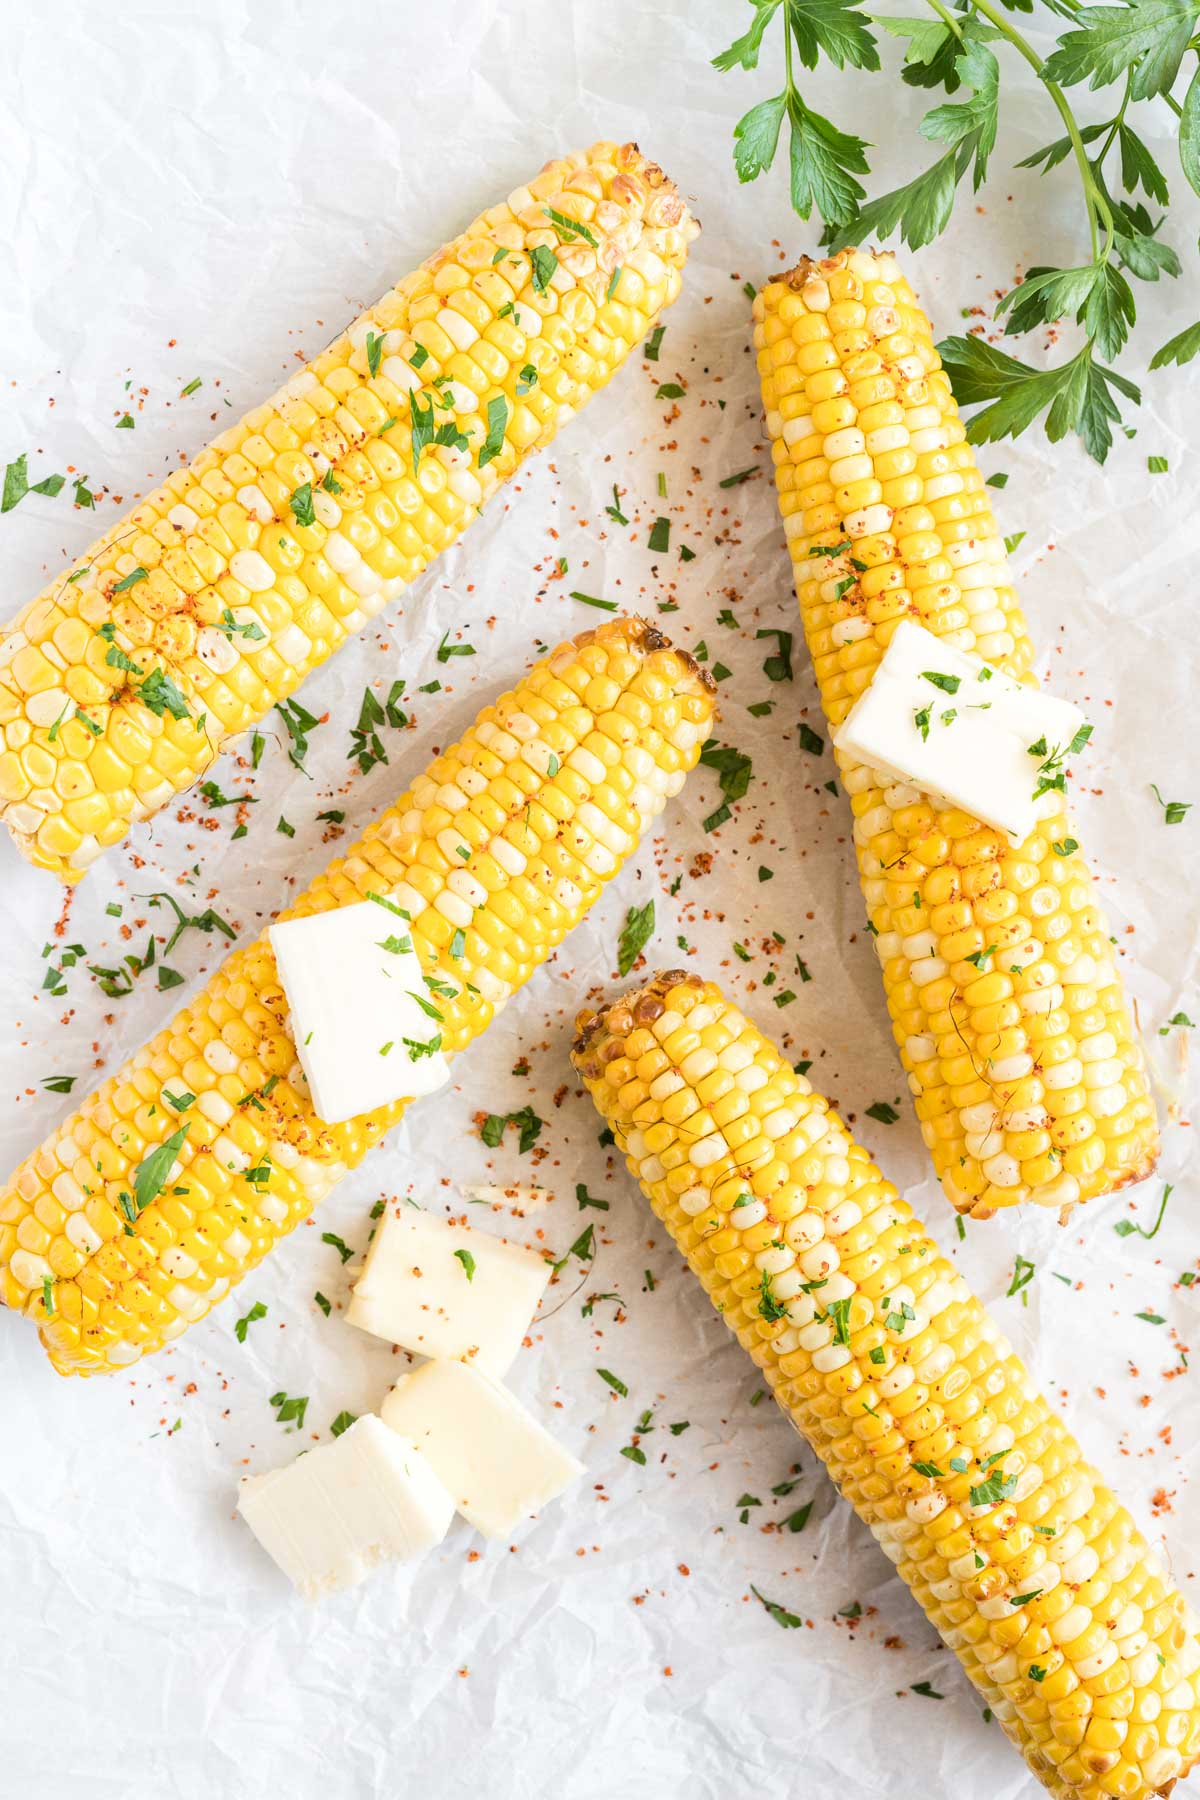 4 corn on the cobs with butter pats, salt and fresh chopped herbs.